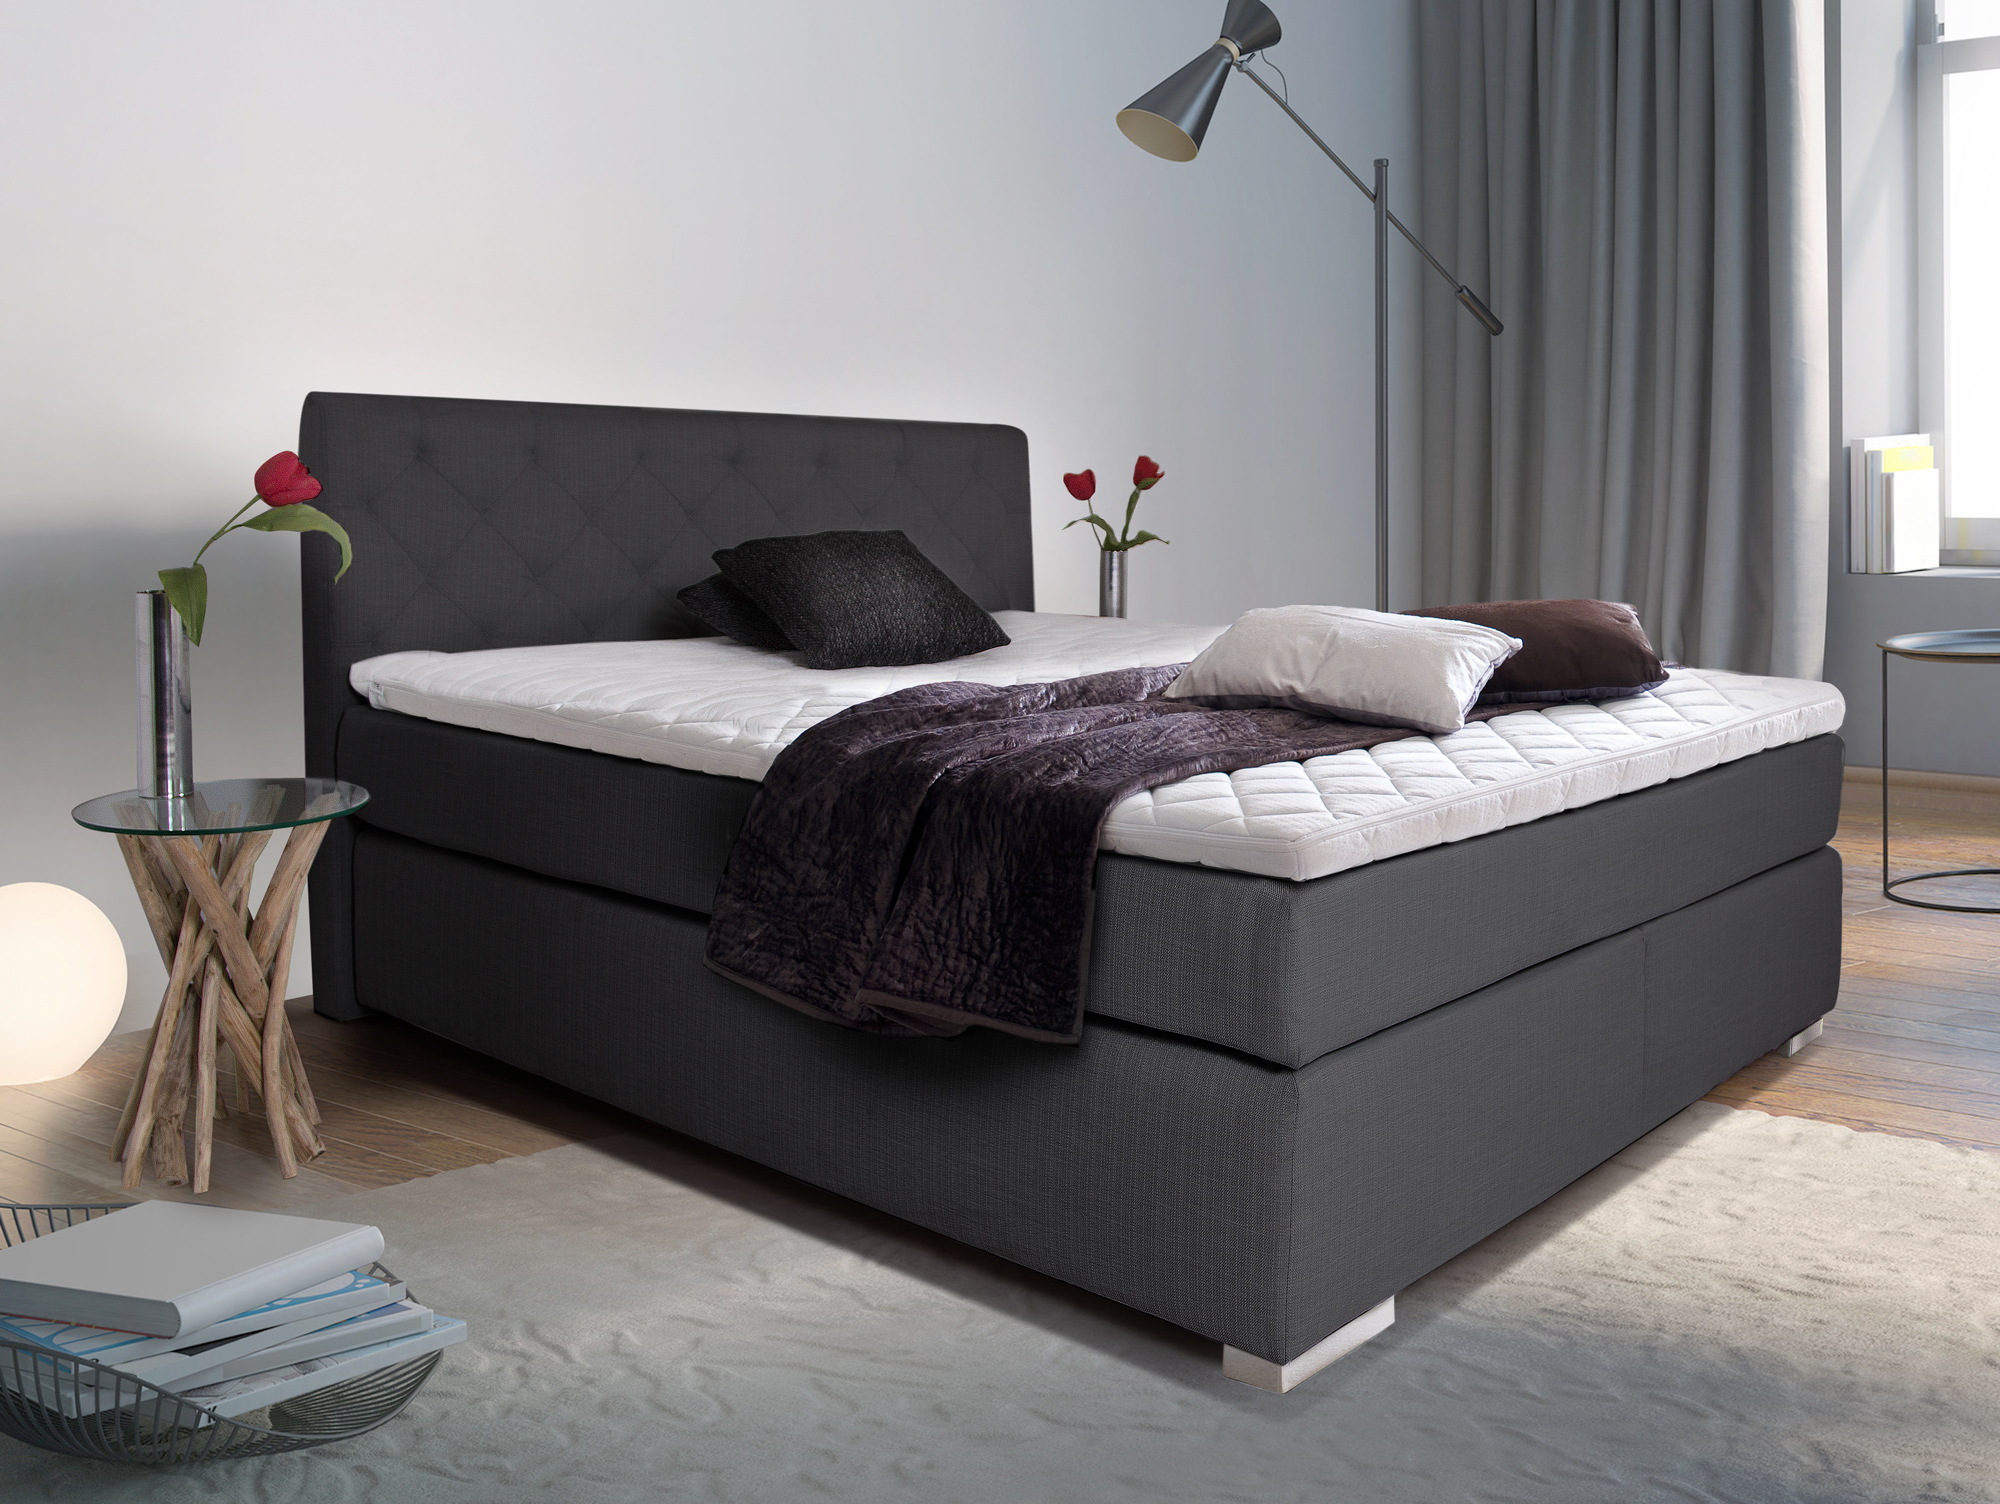 premium boxspringbett inkl kopfteil 180 x 200 cm anthrazit h rtegrad 3. Black Bedroom Furniture Sets. Home Design Ideas